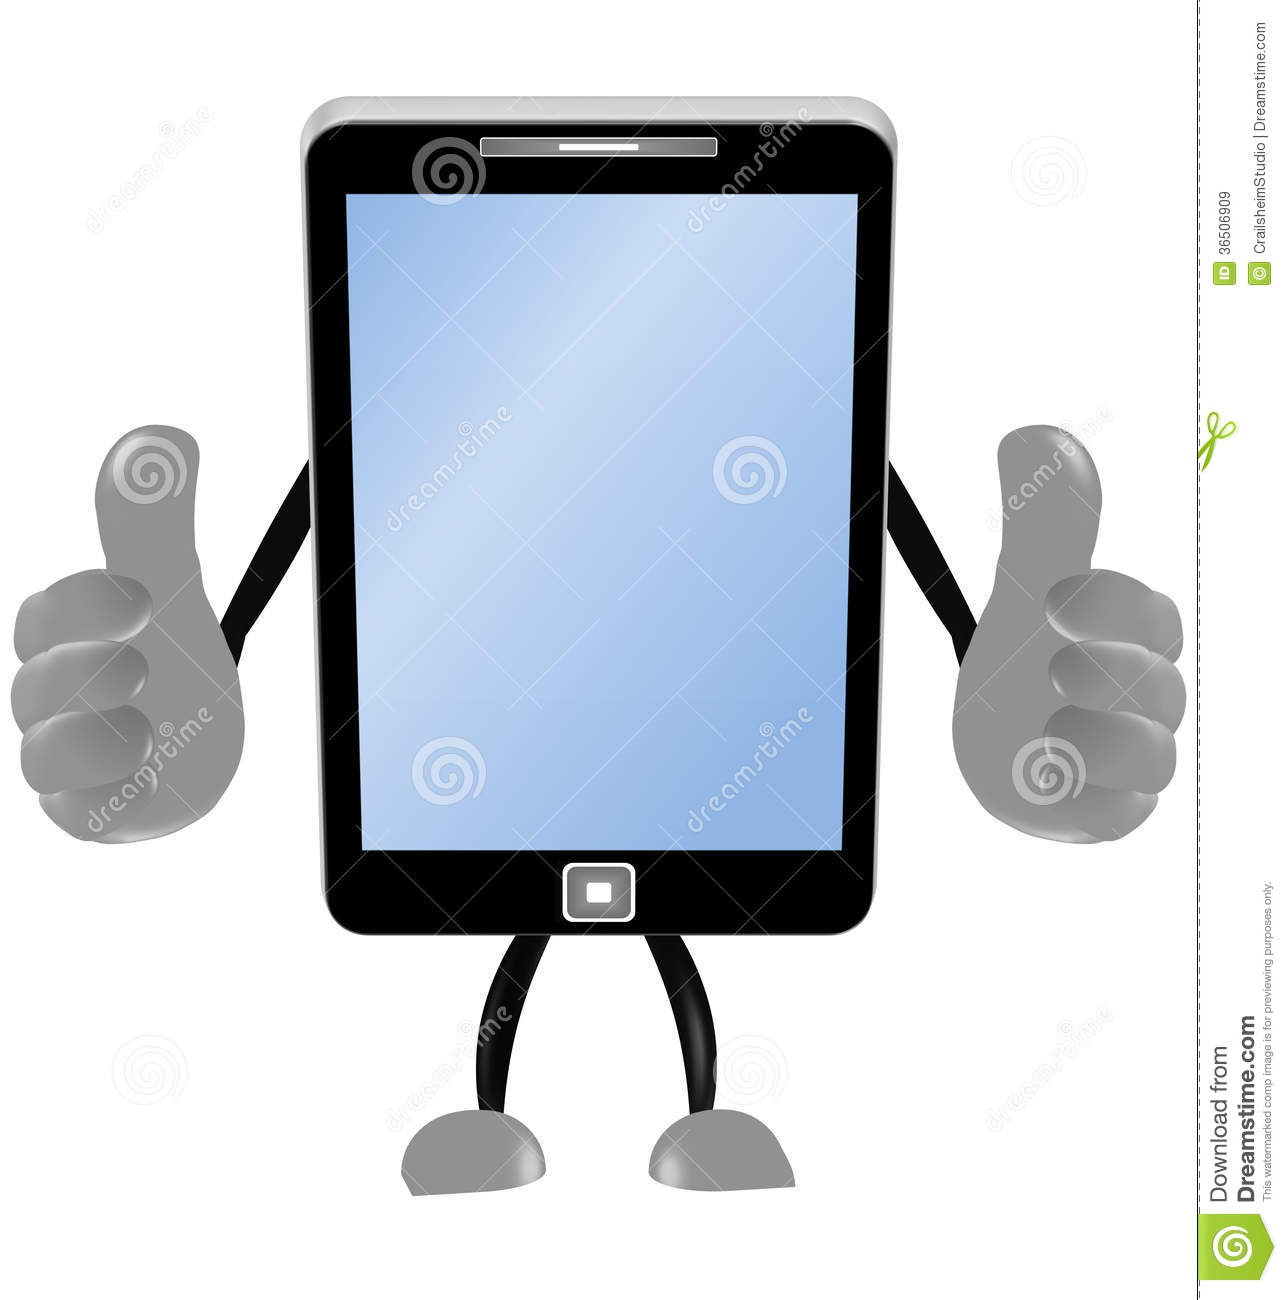 Smartphone 3d Thumbs Up Royalty Free Stock Images   Image  36506909